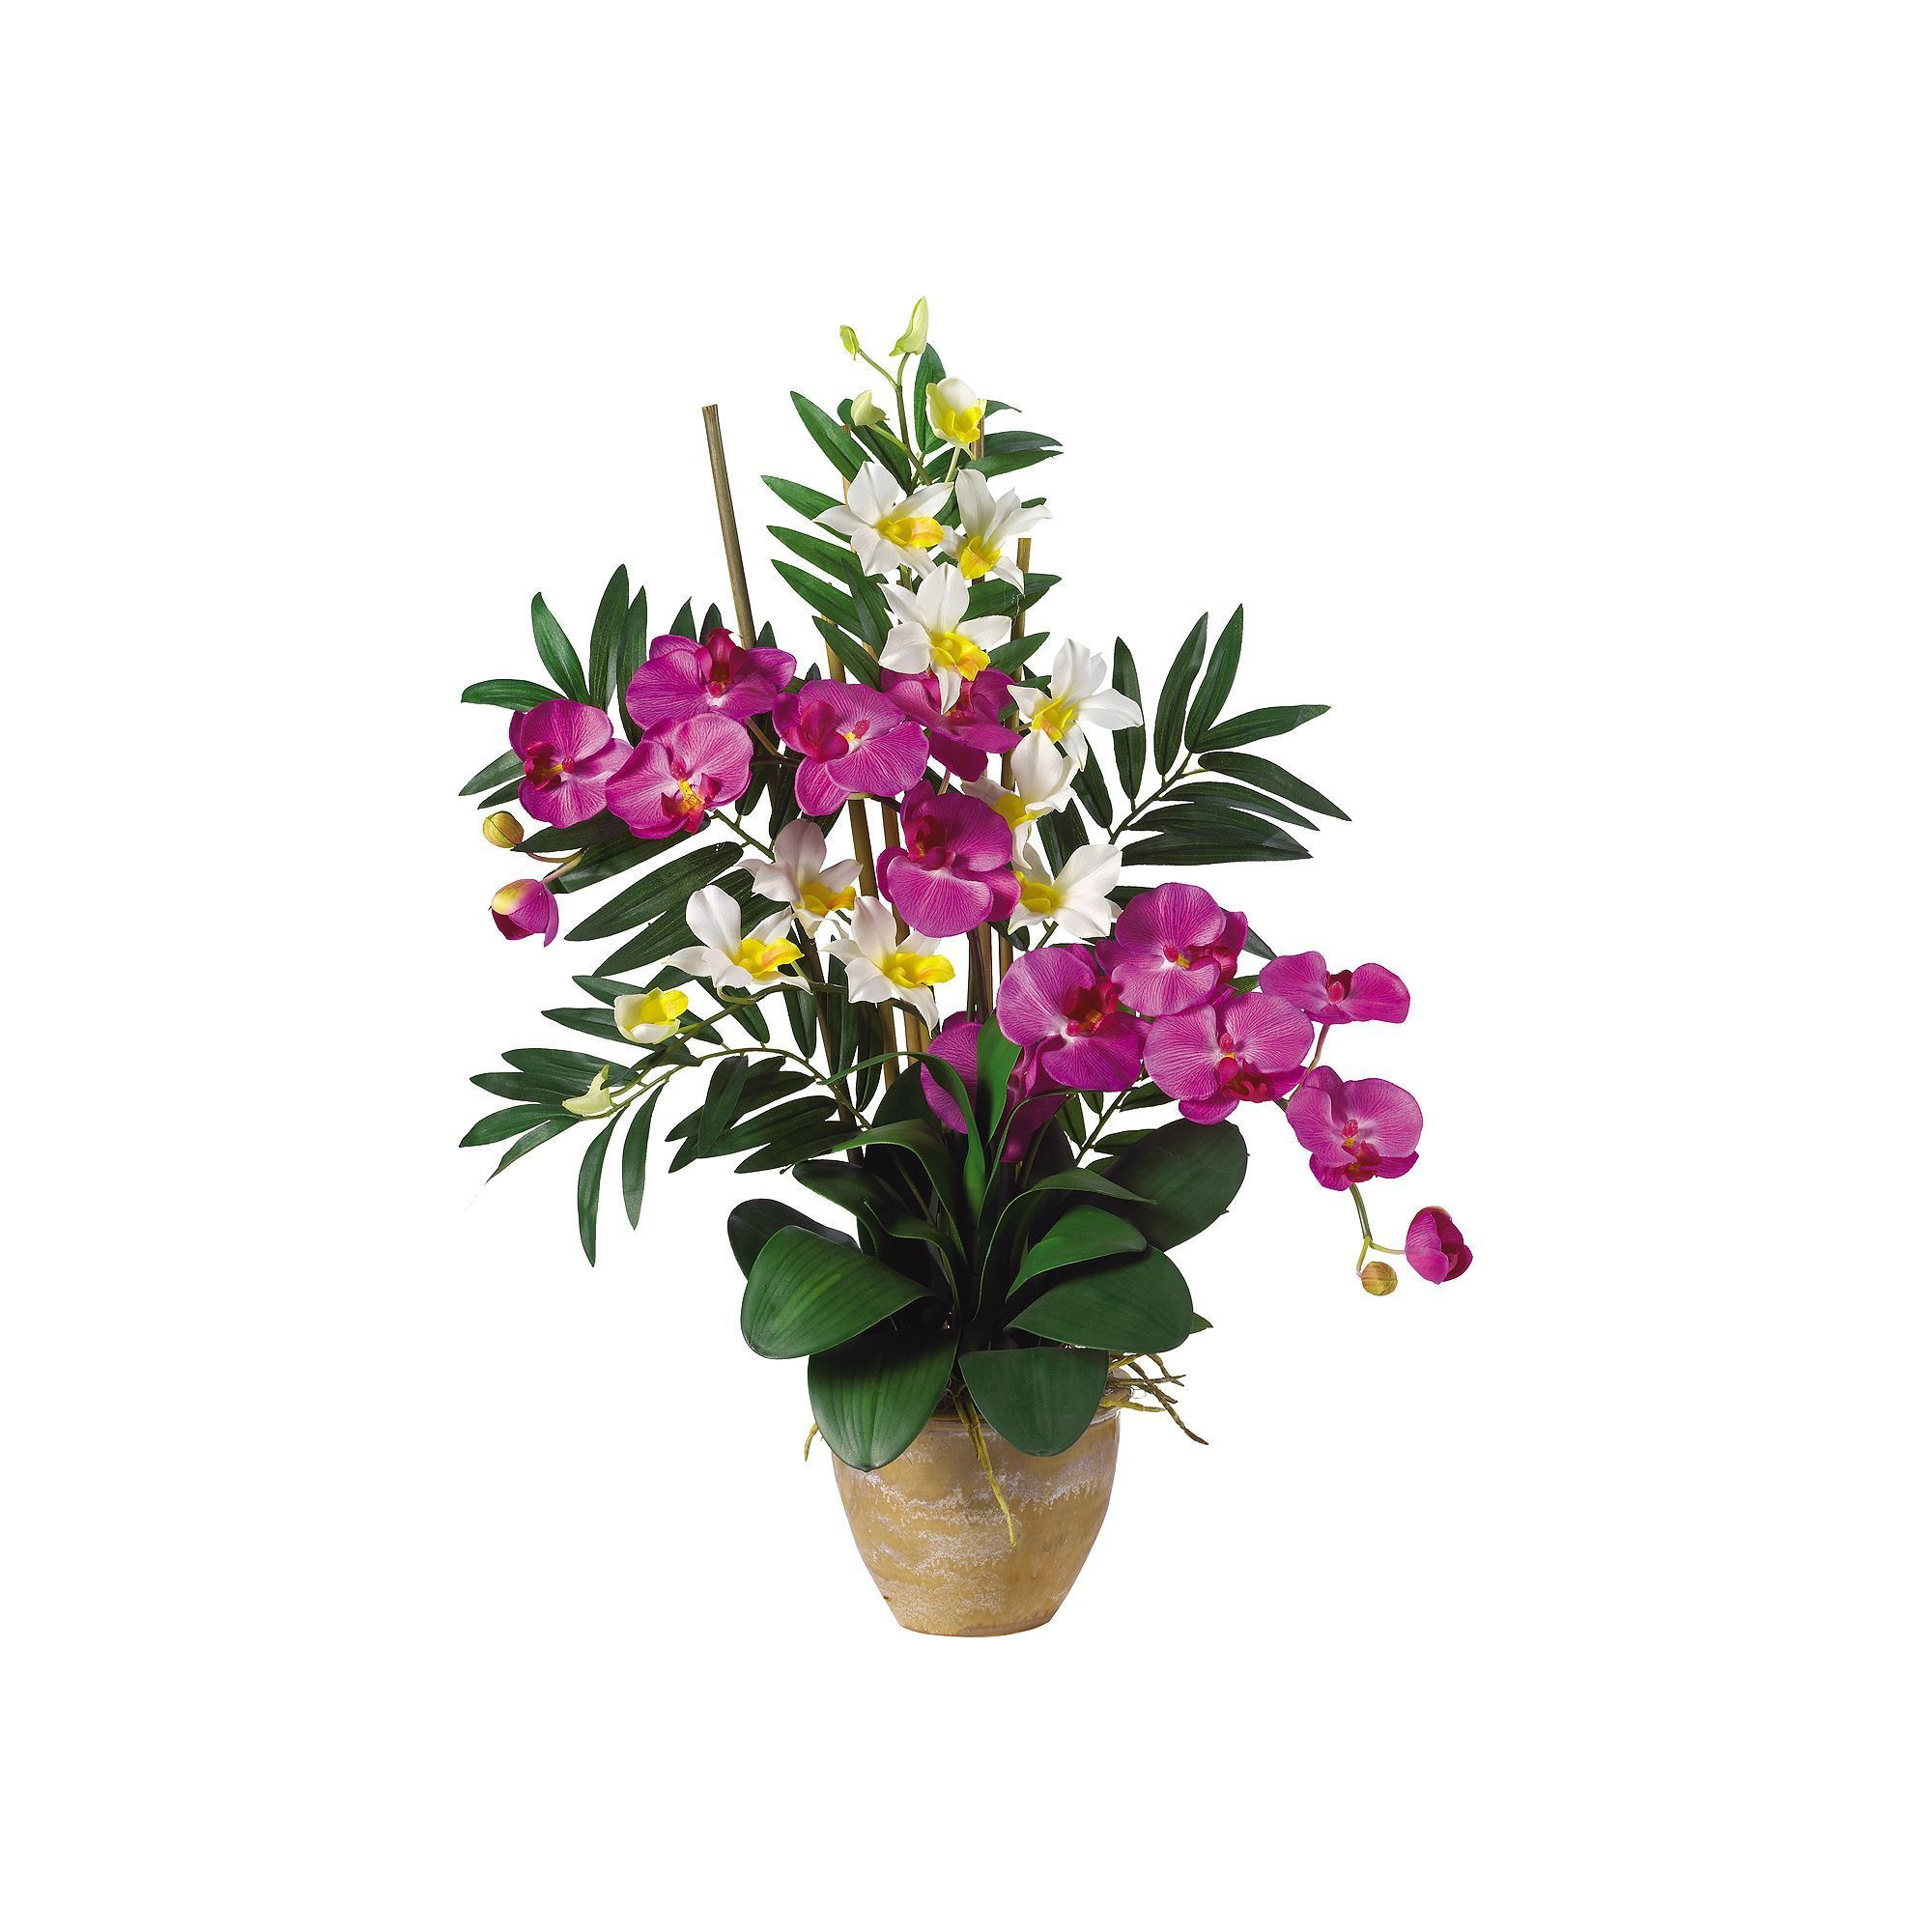 where to buy silver vase orchids of nearly natural silk phalaenopsis and dendrobium orchid arrangement within nearly natural silk phalaenopsis and dendrobium orchid arrangement multicolor